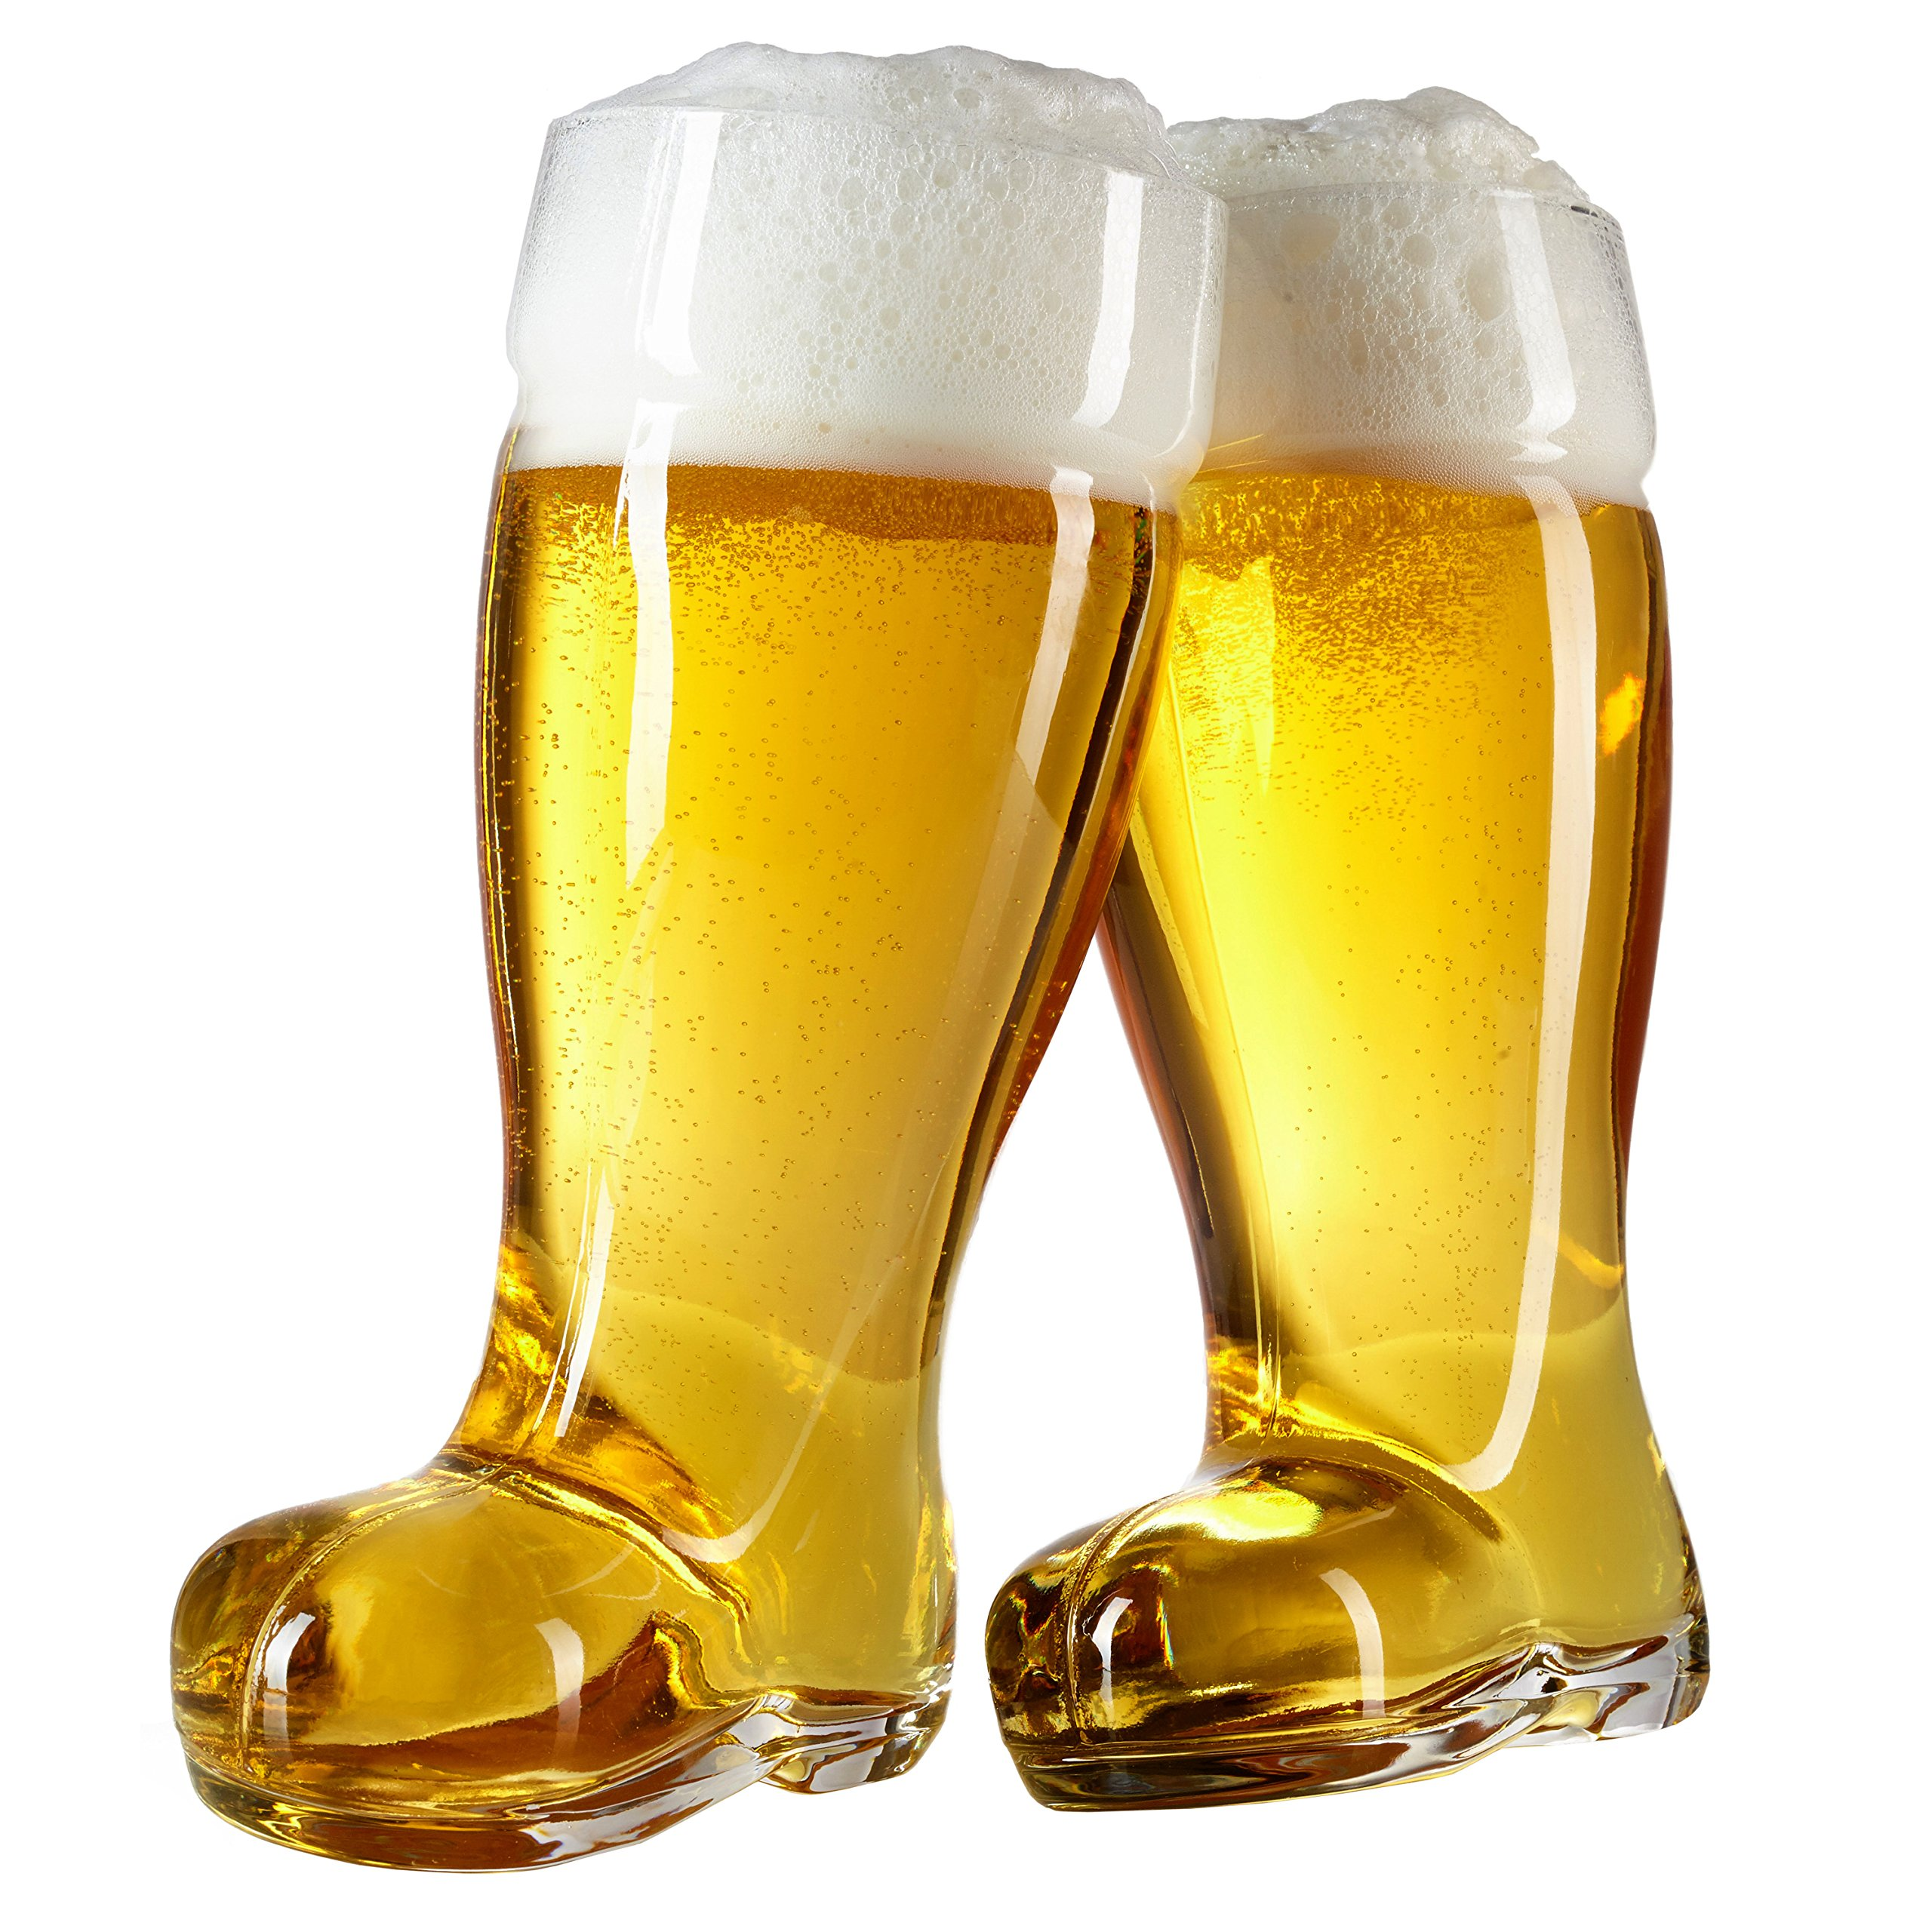 2 Liter Beer Boot Glass Set - Oktoberfest Beer Boots - Set of 2 - MyGift by MyGift